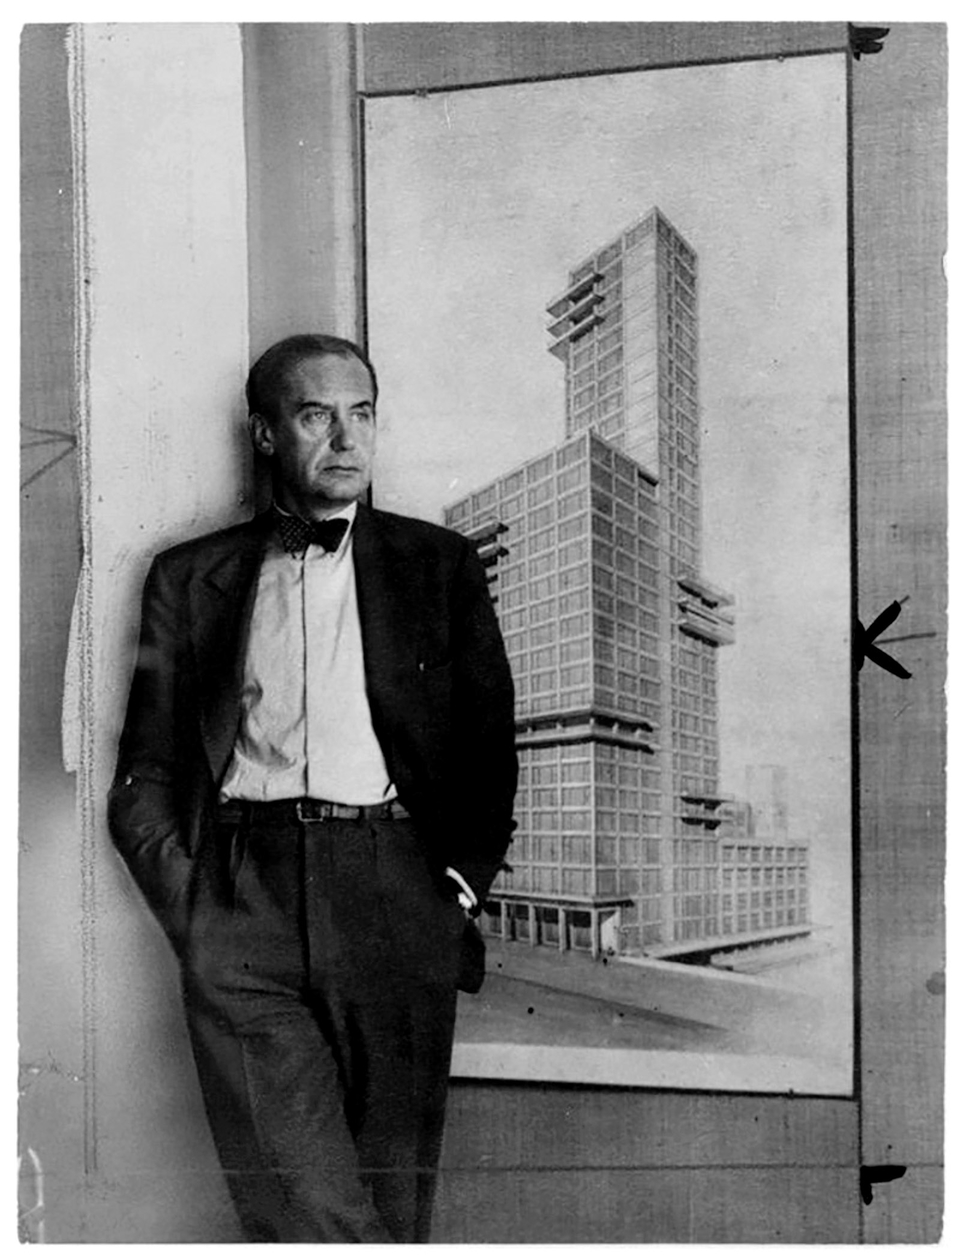 Whatever else one might think of Walter Gropius—the pioneering German architect who founded the Bauhaus a century ago this year and thereby earned an irrevocable place in the pantheon of Modernism—it is hard not to be impressed by his most salient talent: